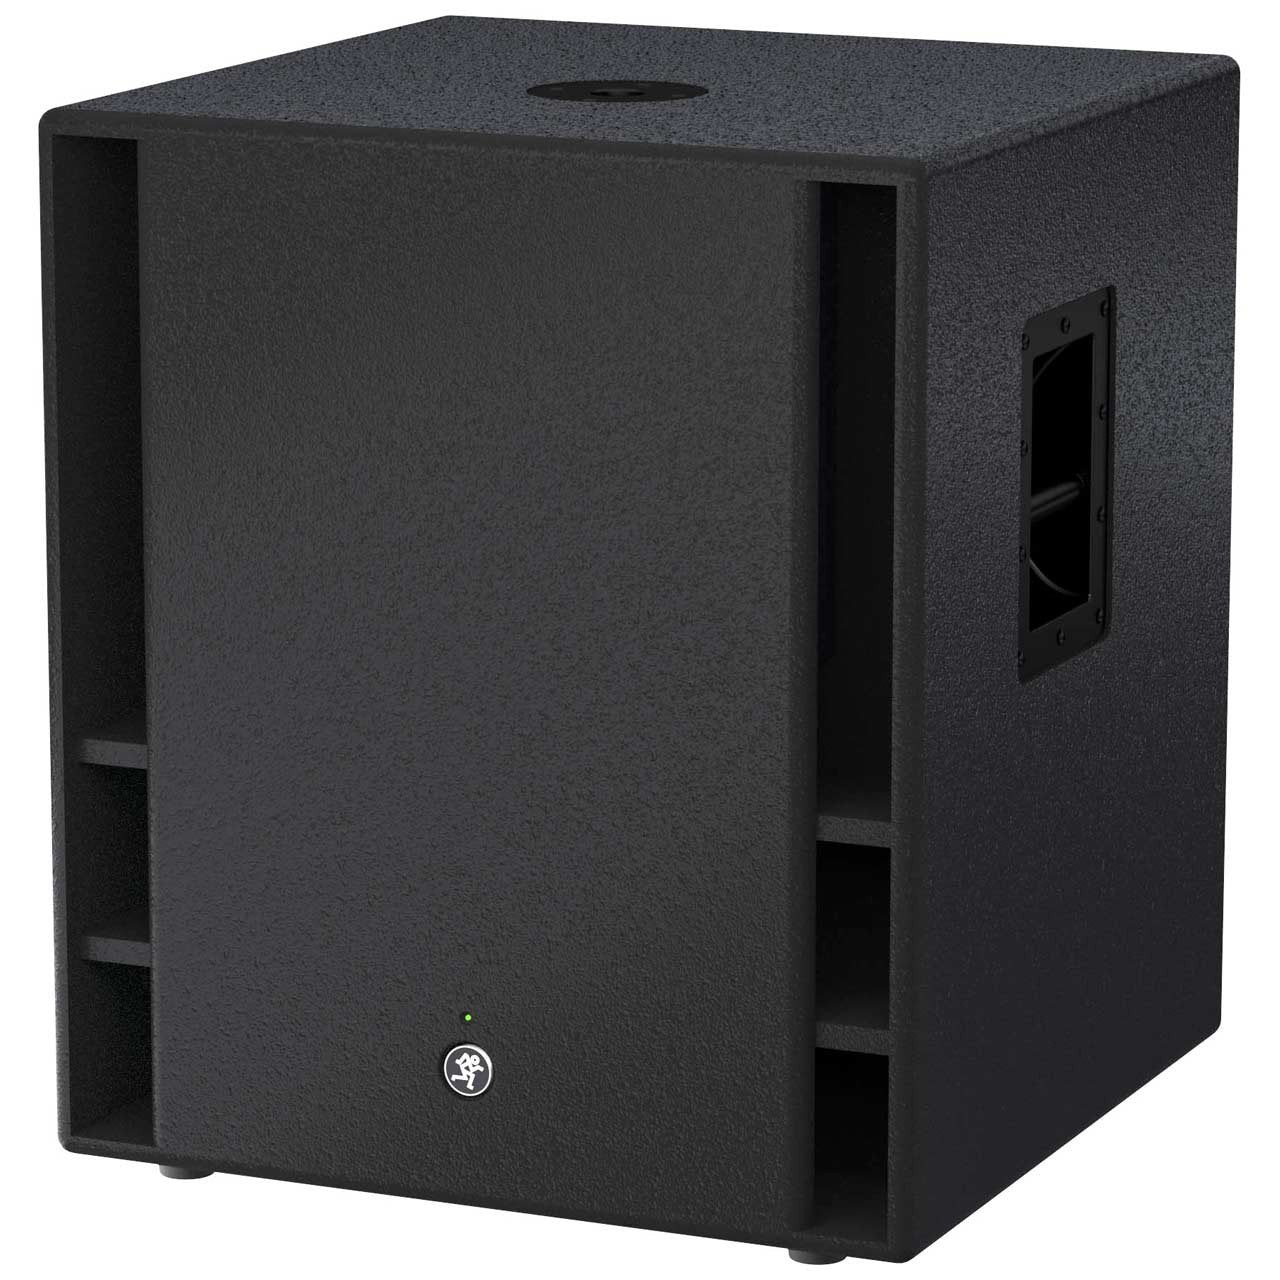 Powered PA Sub - Mackie Thump 18S Powered PA Subwoofer